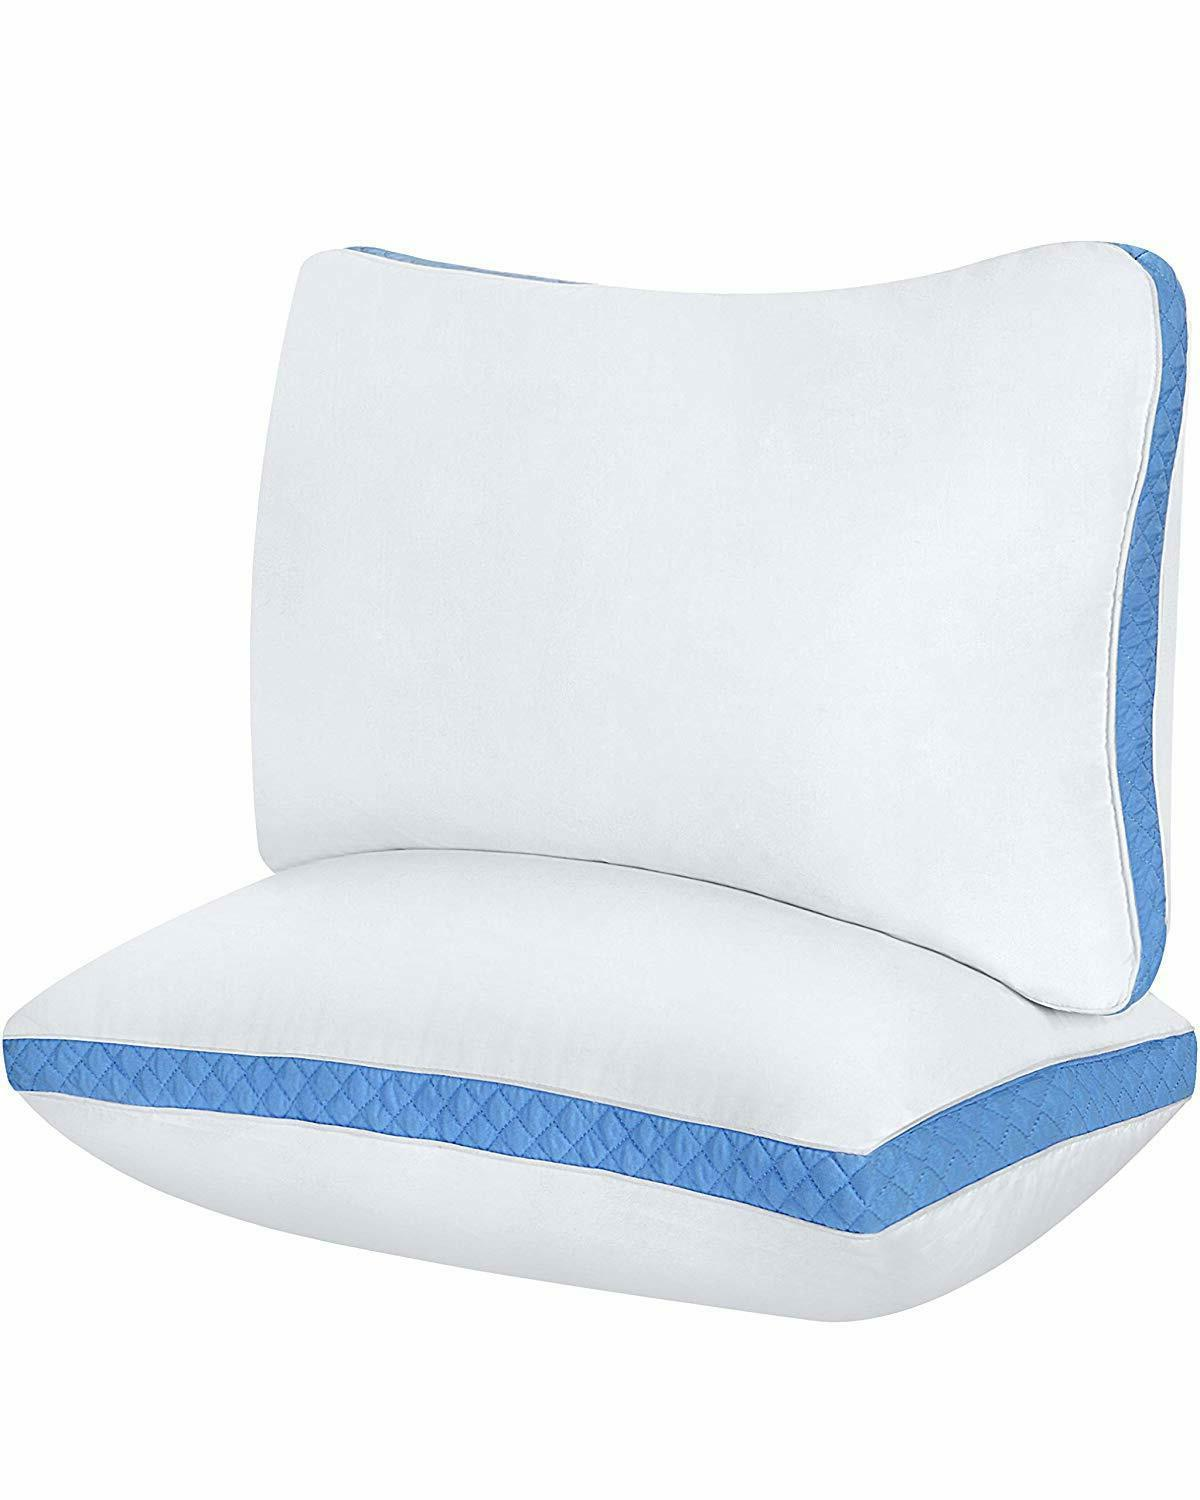 gusseted quilted pillow 2 pack hypo allergenic